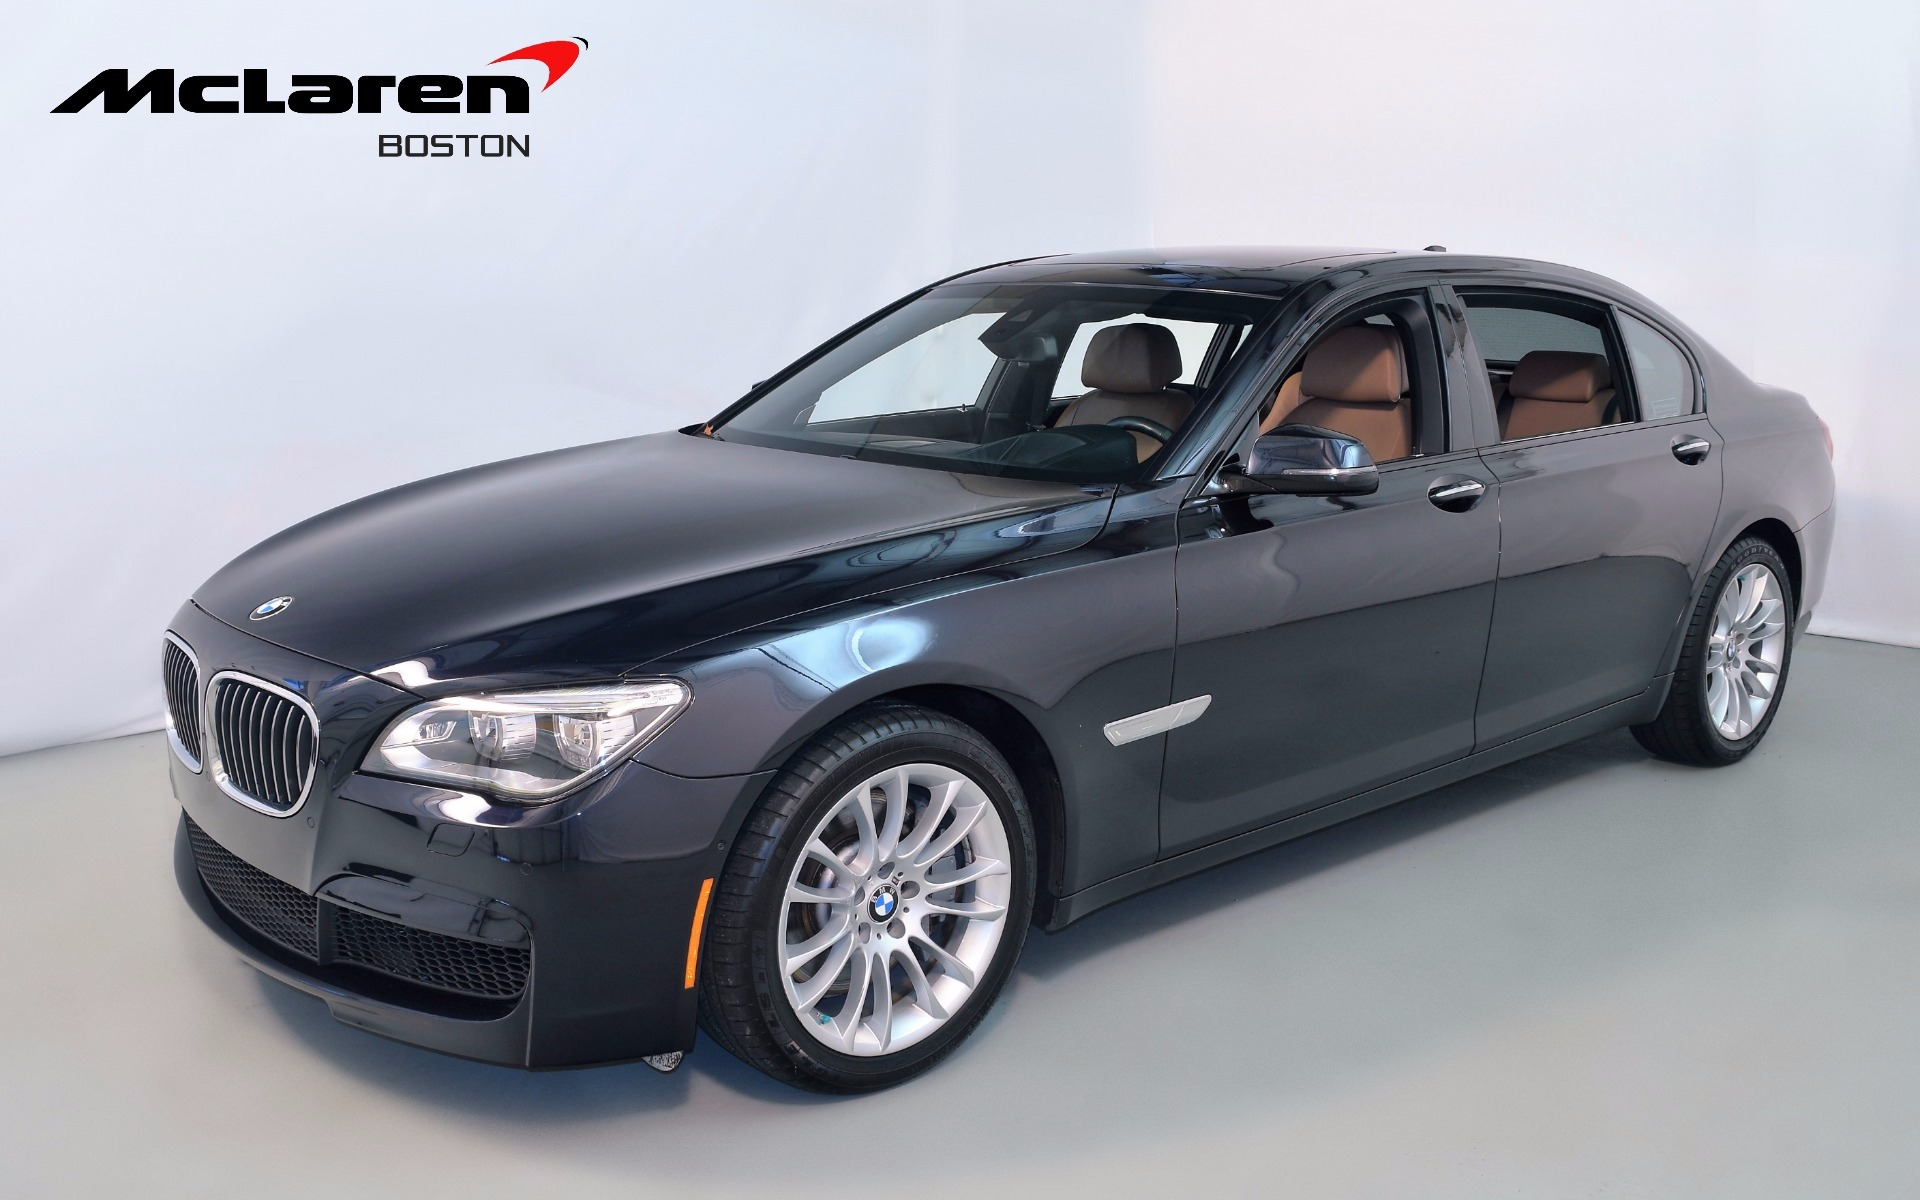 2014 bmw 7 series 750li xdrive for sale in norwell ma 142179 mclaren boston. Black Bedroom Furniture Sets. Home Design Ideas